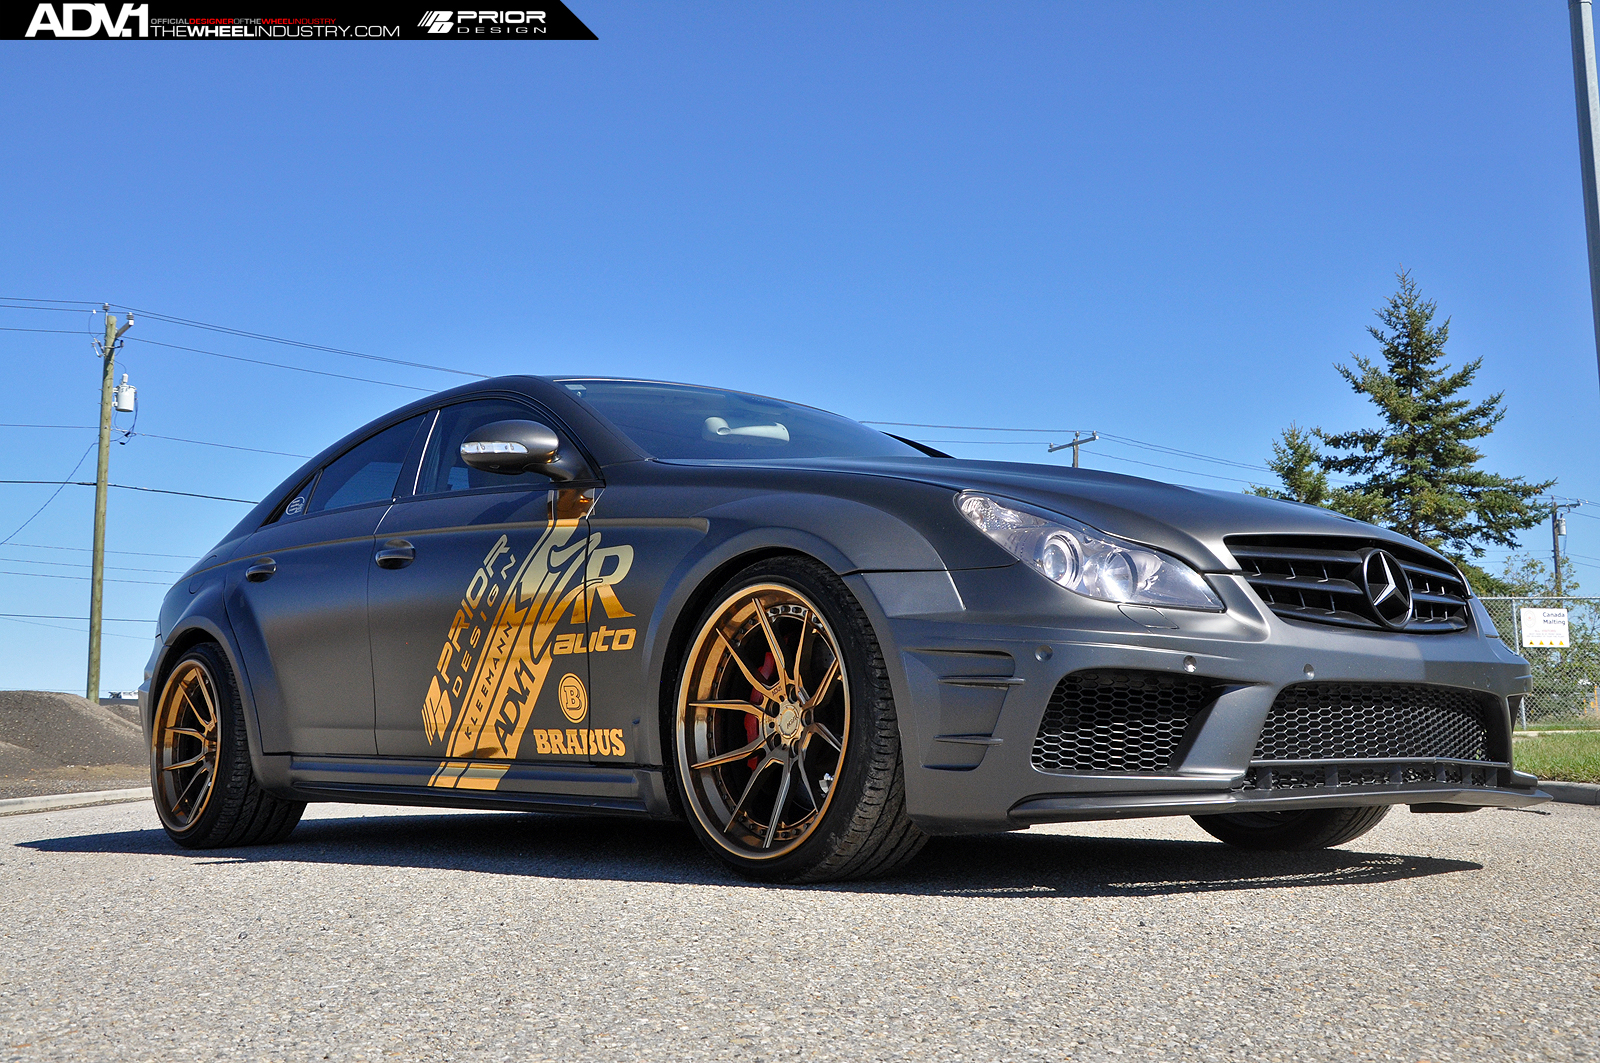 mercedes benz cls55 amg adv5 0 track spec cs wheels adv 1 wheels. Black Bedroom Furniture Sets. Home Design Ideas